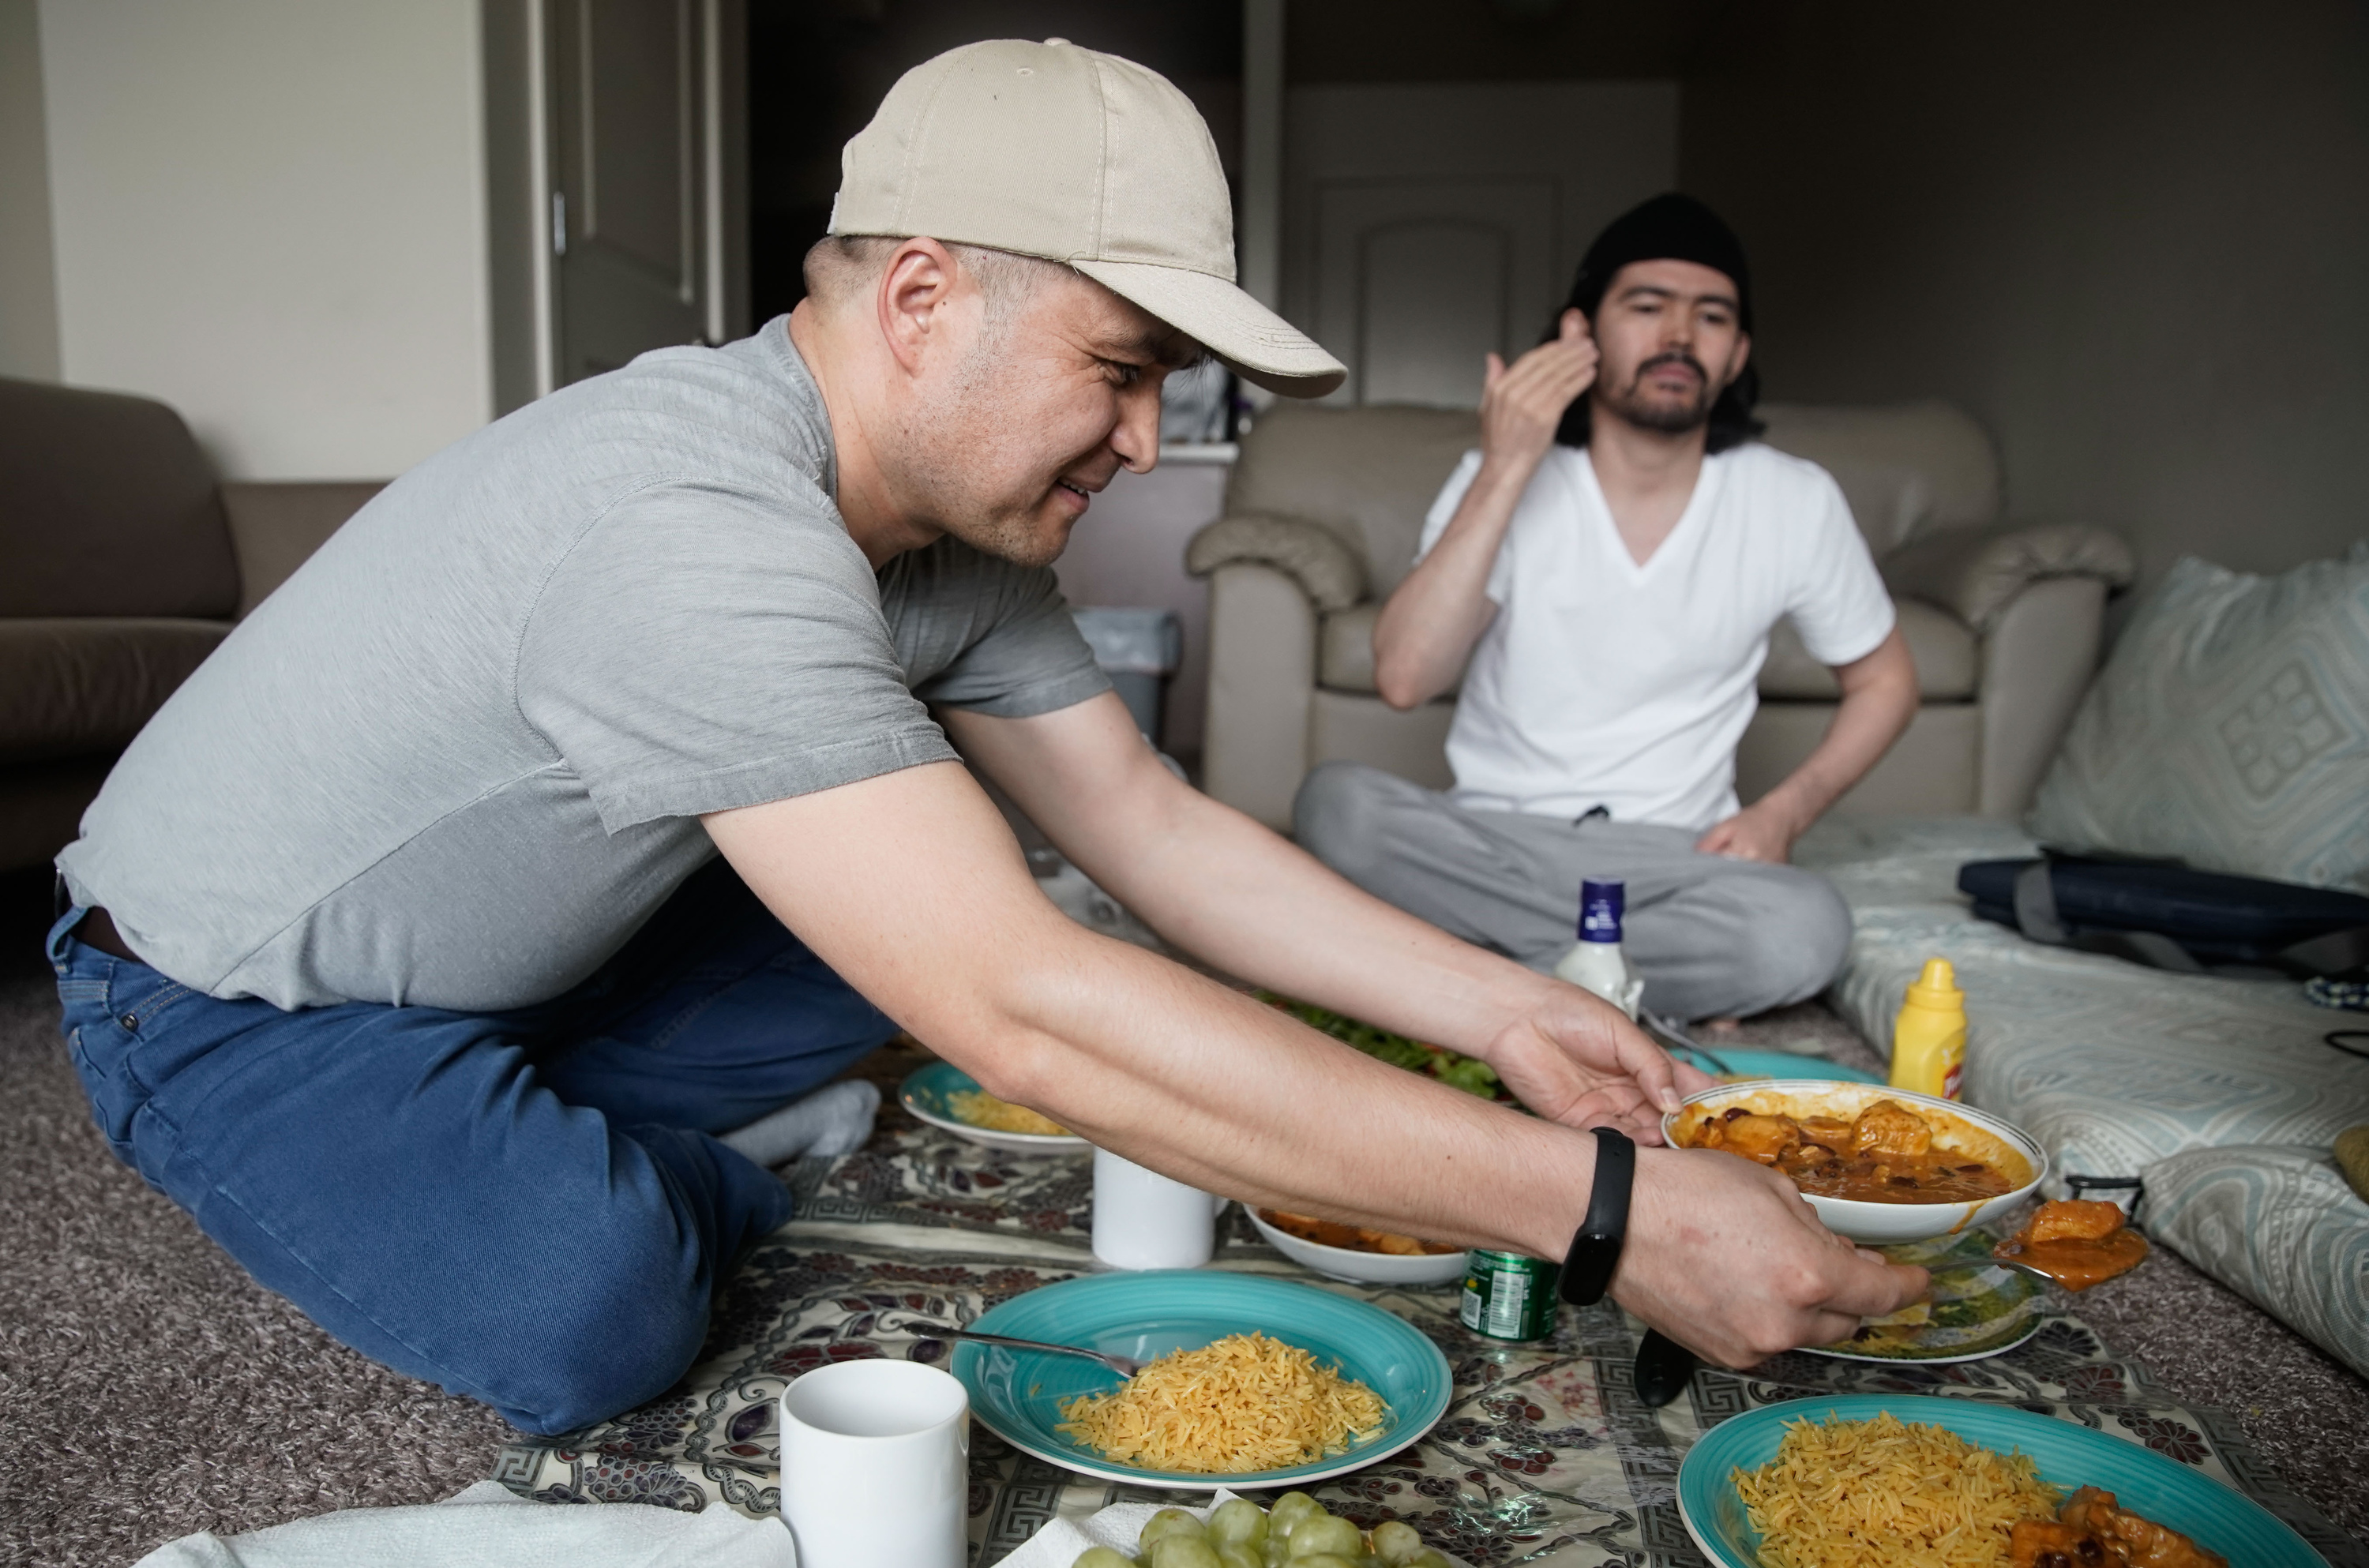 Azim Kakaie serves lunch to his flatmate, Hussain Yaqobi, in the living room of their home in Salt Lake City.